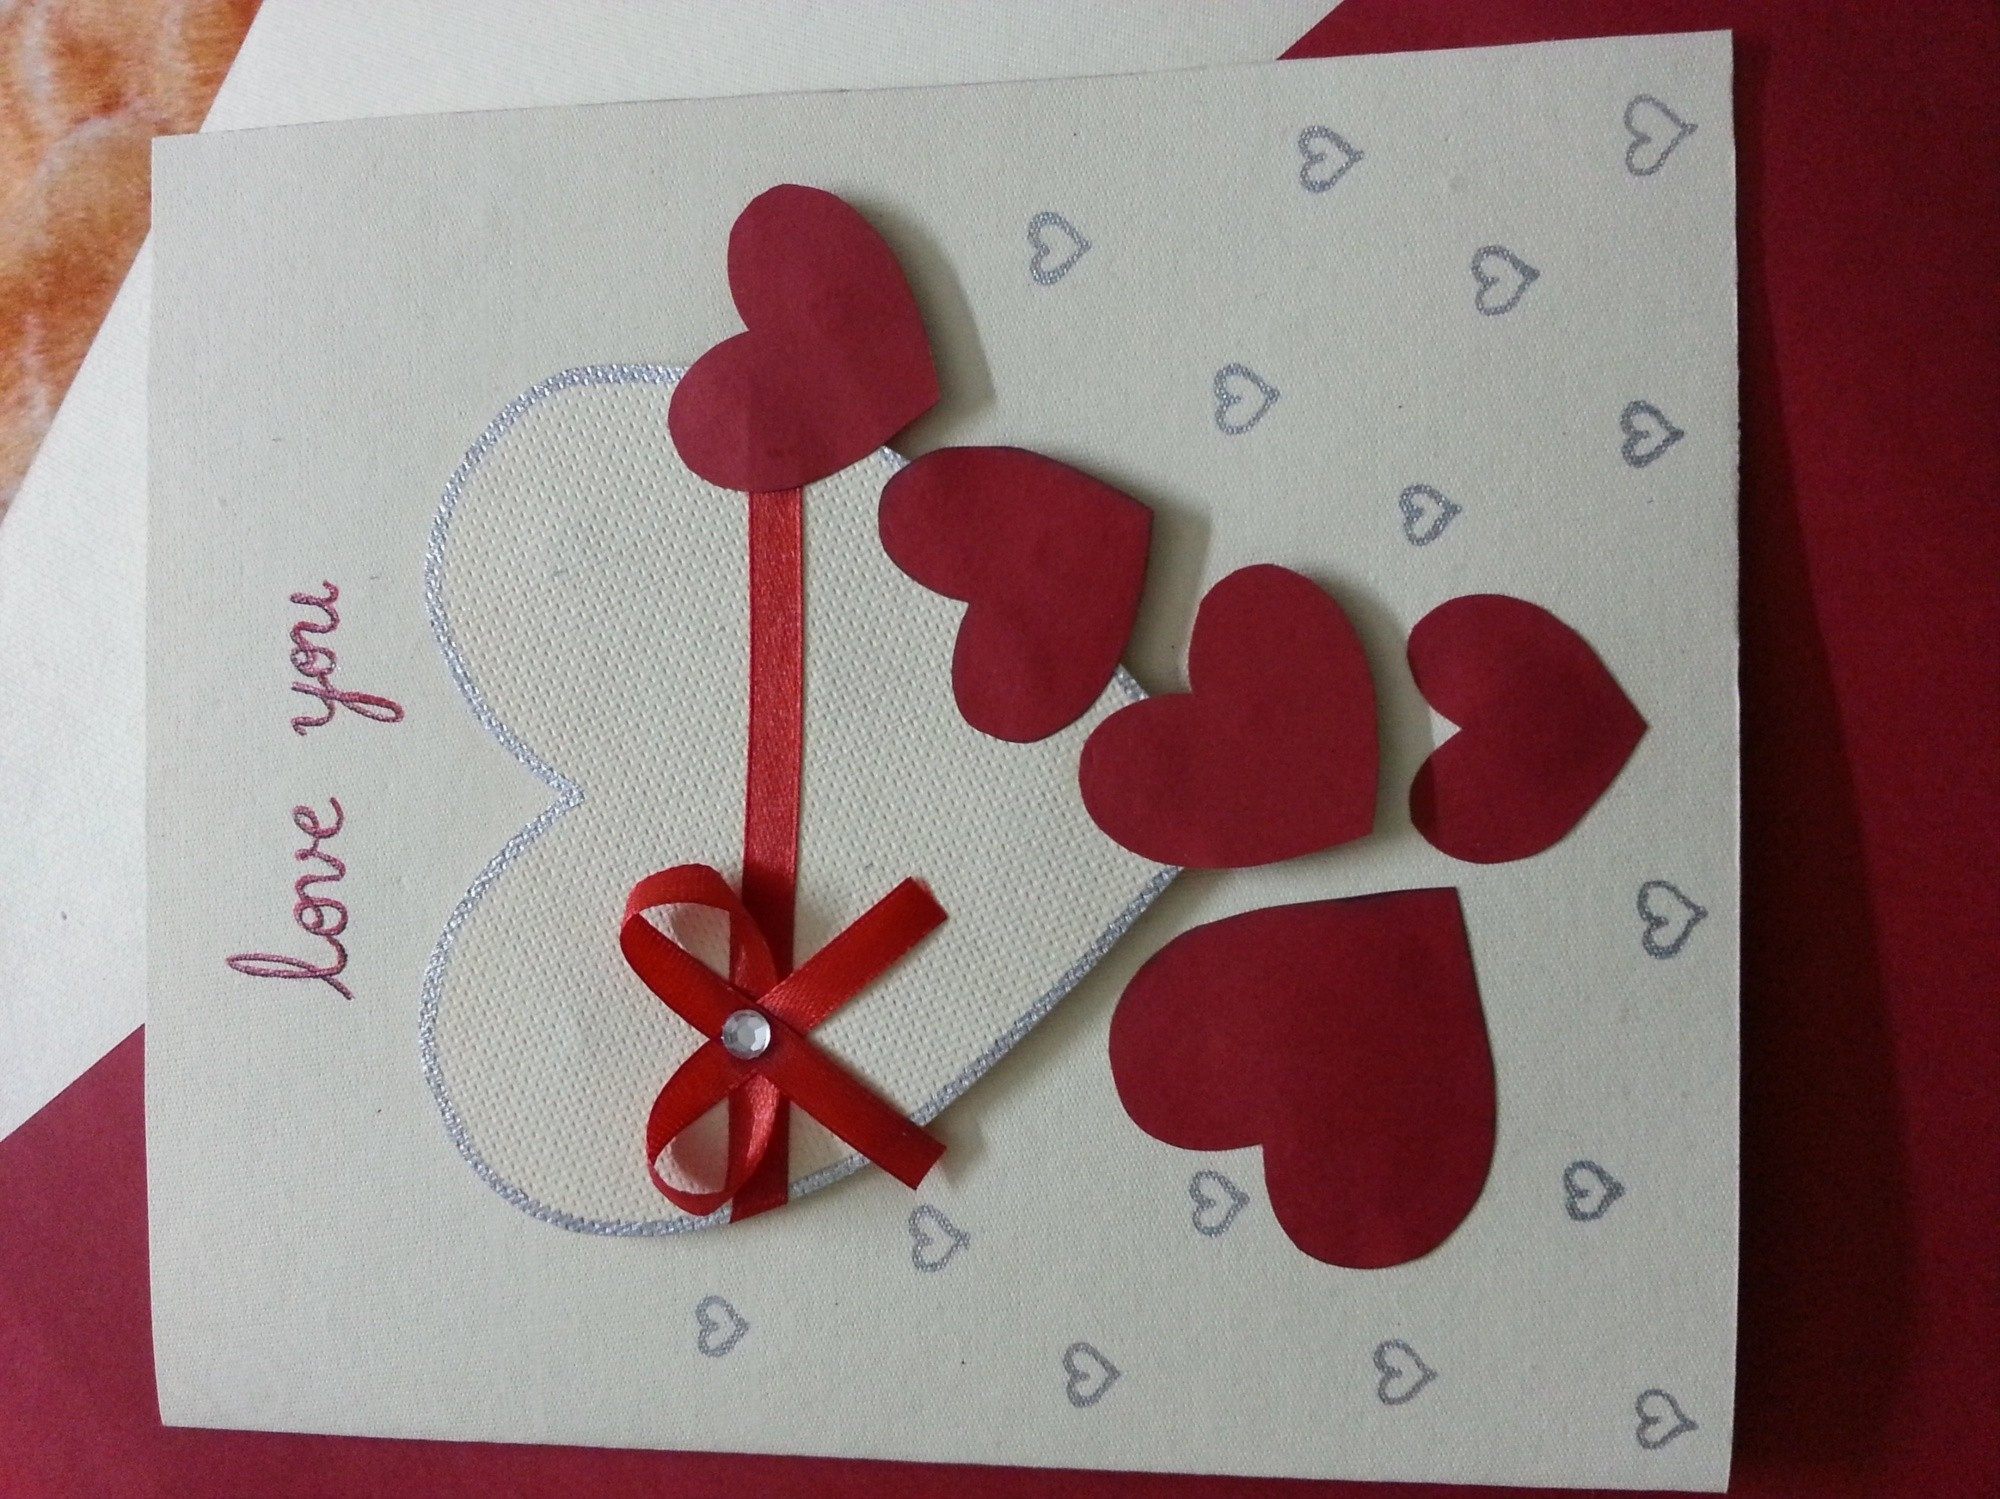 Handmade Cards For Love (9) - Handmade4Cards for Handmade Love Cards Ideas 30168